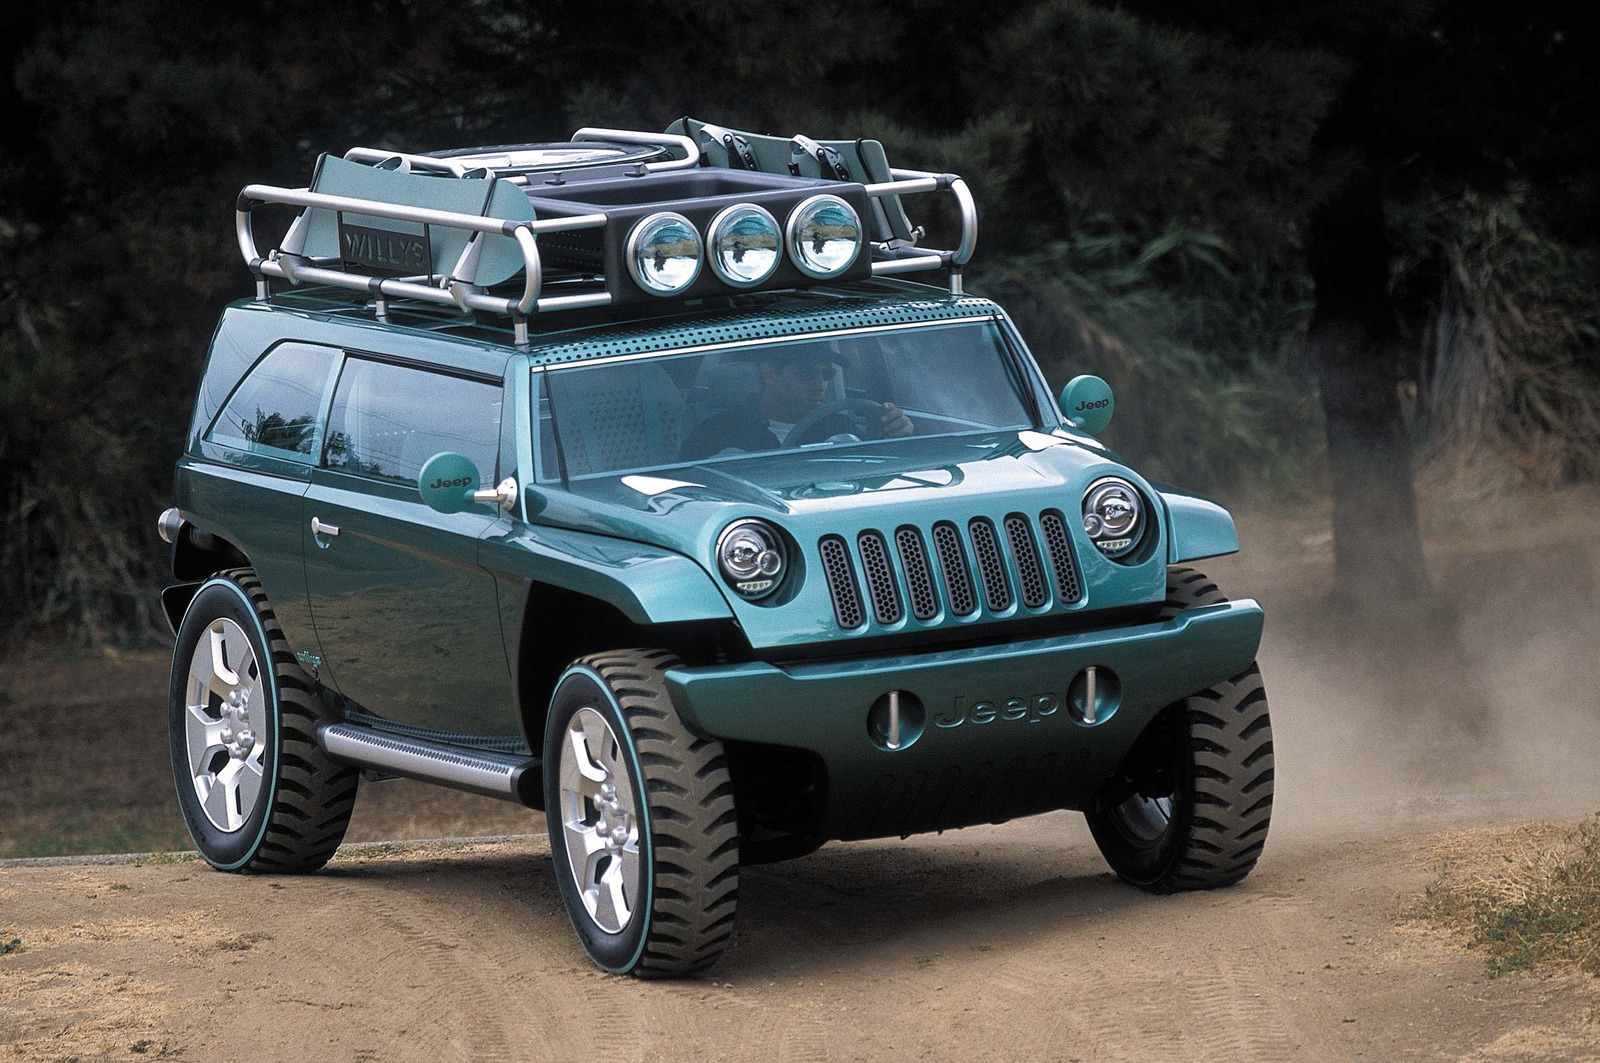 Top 5 Best Jeep Concepts Ever News Fc Concept Truck Willys2